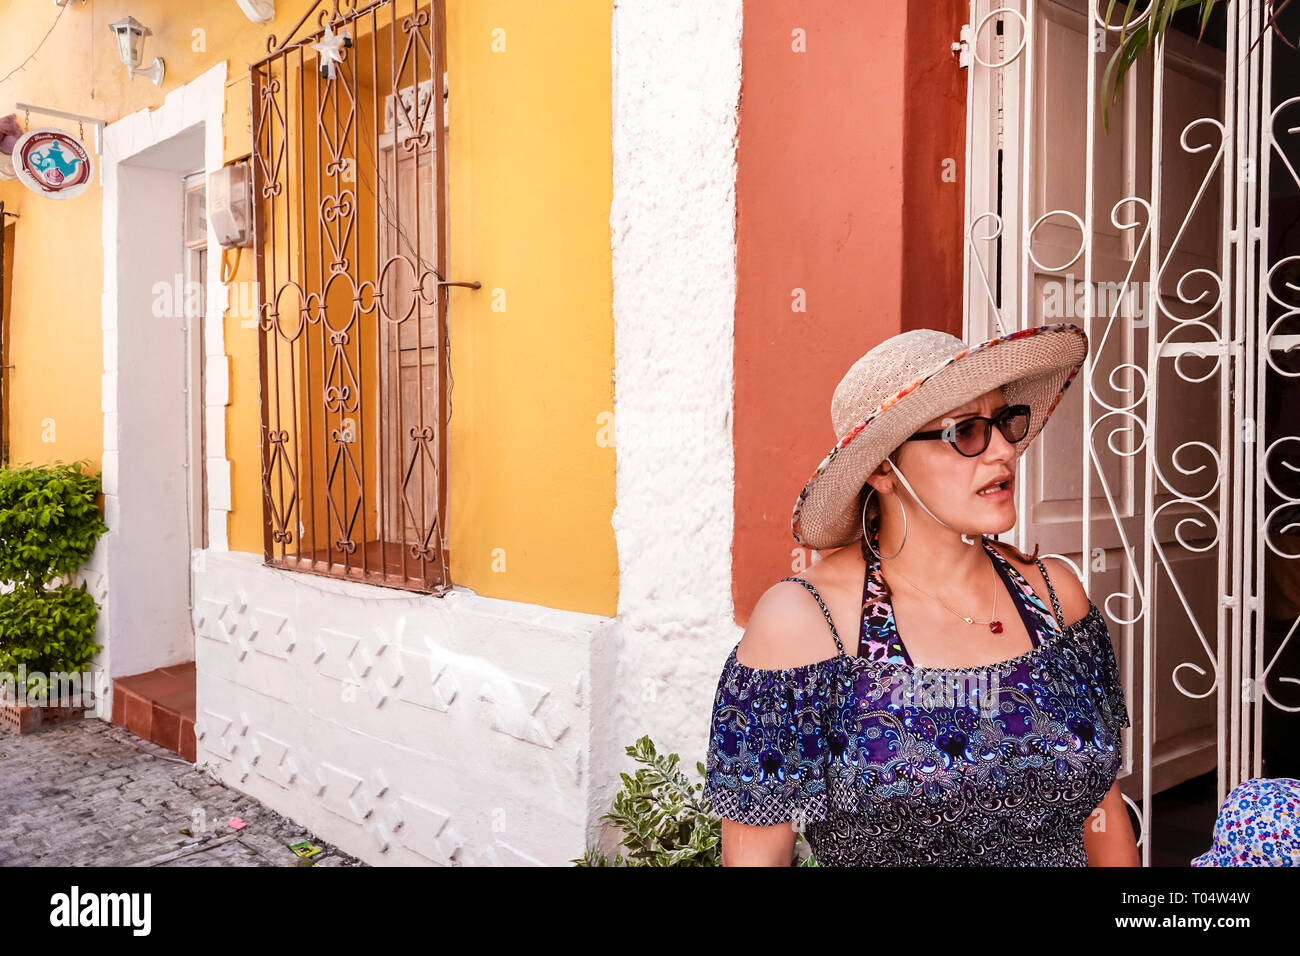 Cartagena Colombia Old Walled City Center centre Centro Hispanic resident residents woman decorative wrought iron window bars - Stock Image